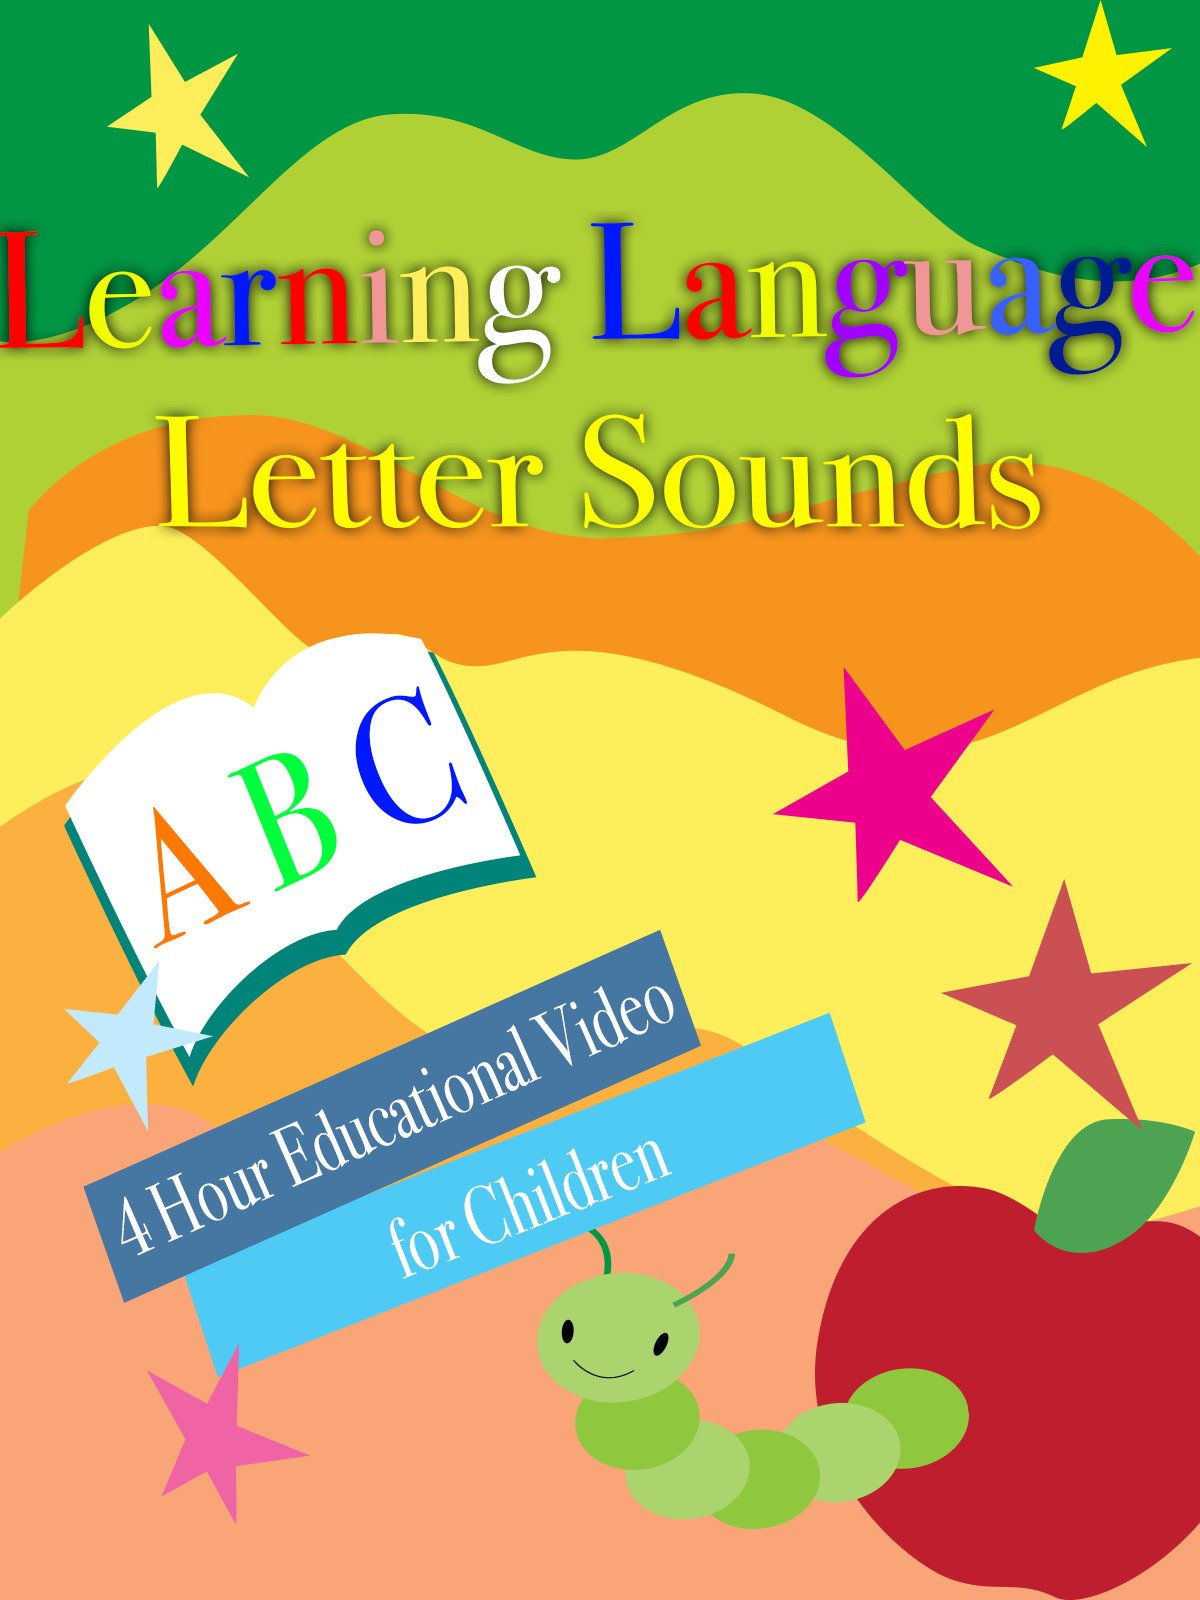 Learning Language Letter Sounds 4 Hour Educational Video for Children